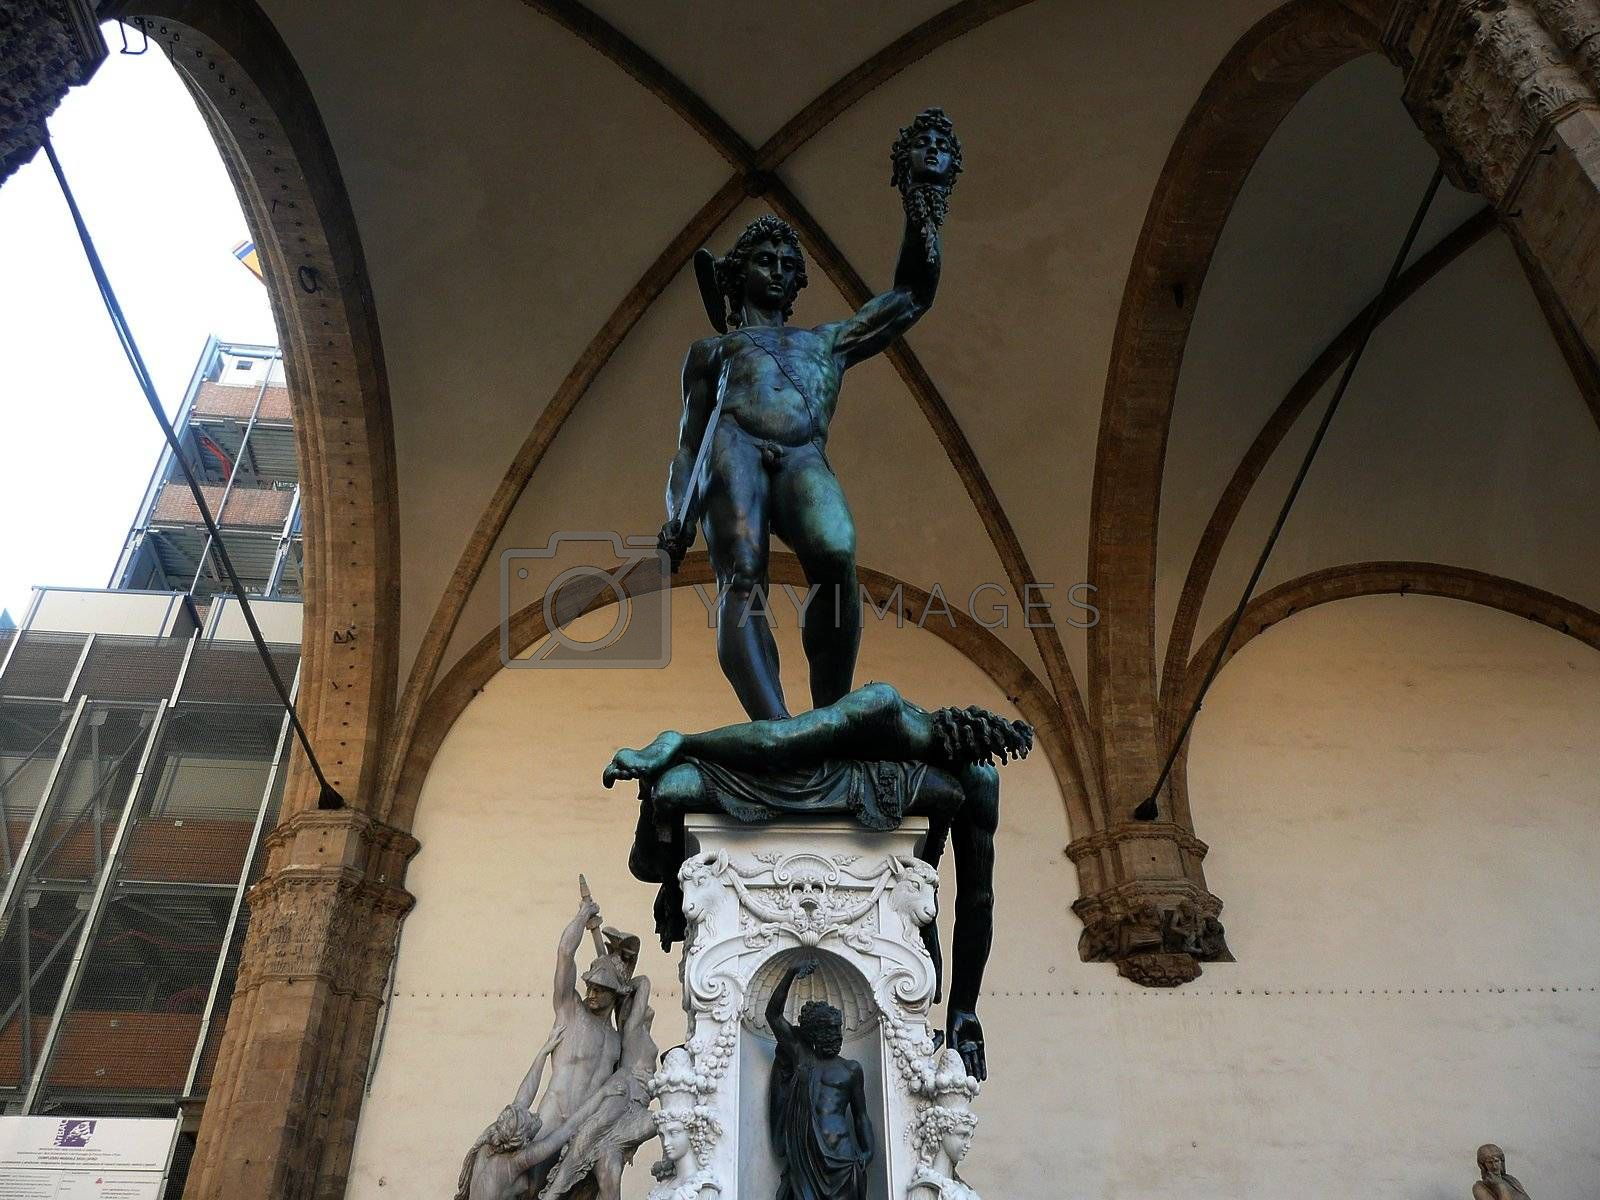 The traditional David and Goliath Statue, Florence, Italy